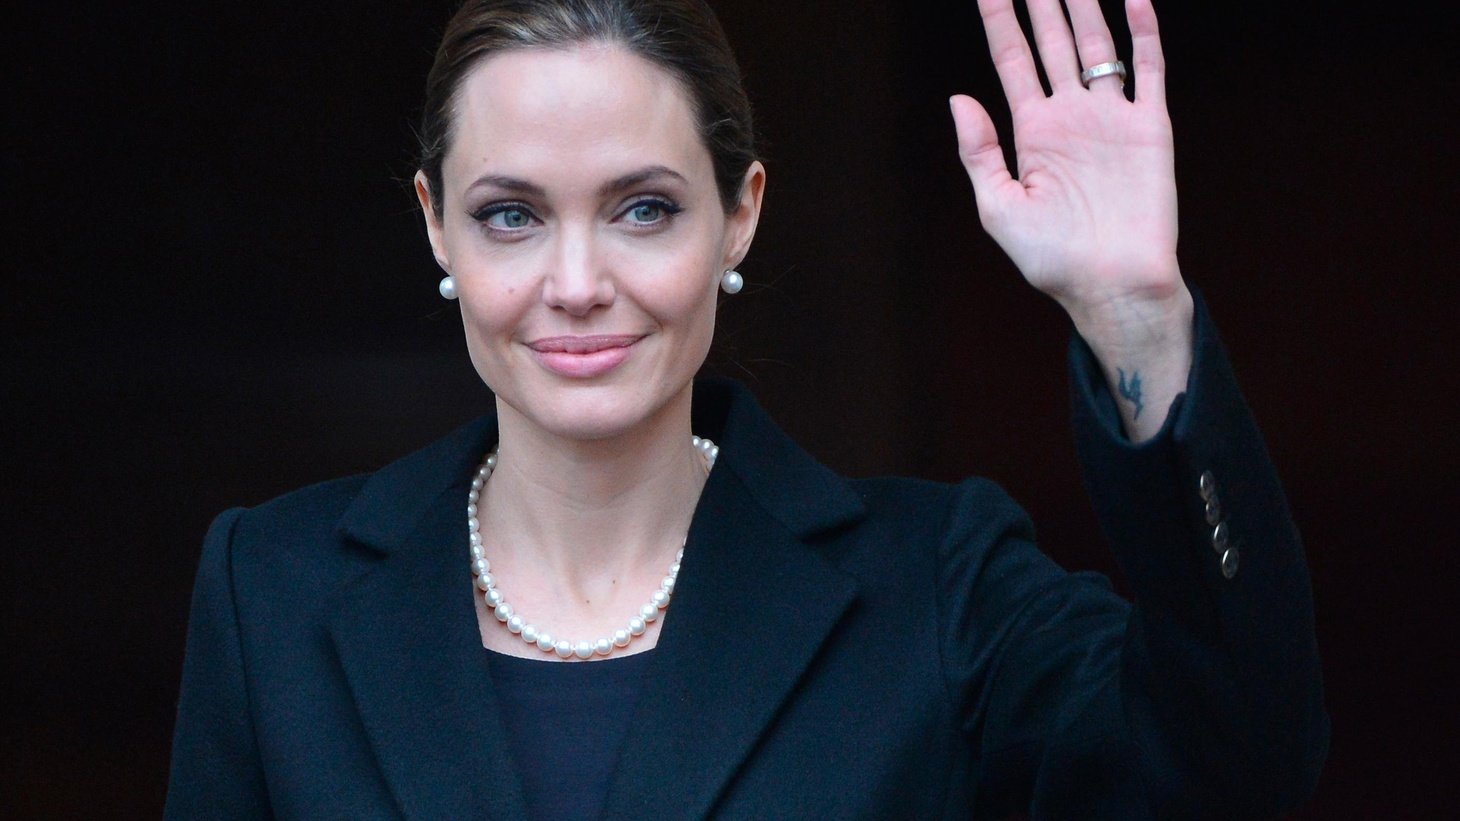 Angelina Jolie Tits angelina jolie and the 'breast cancer gene' | to the point